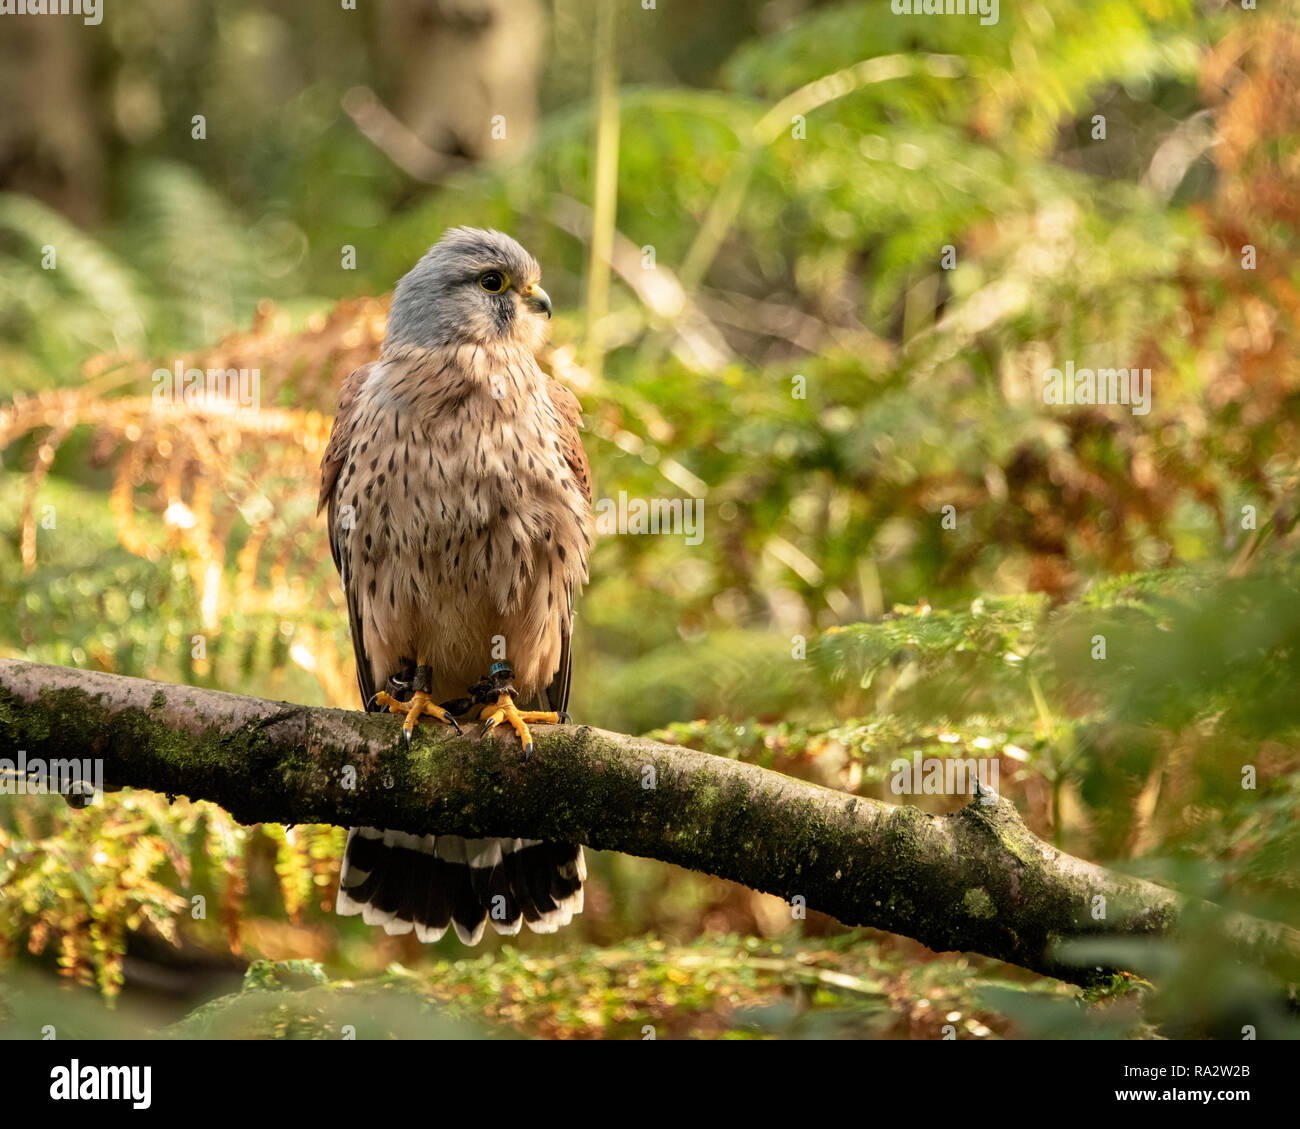 Uk Sherwood Forrest Nottinghamshire Birds Of Prey Event Stock Photo Alamy